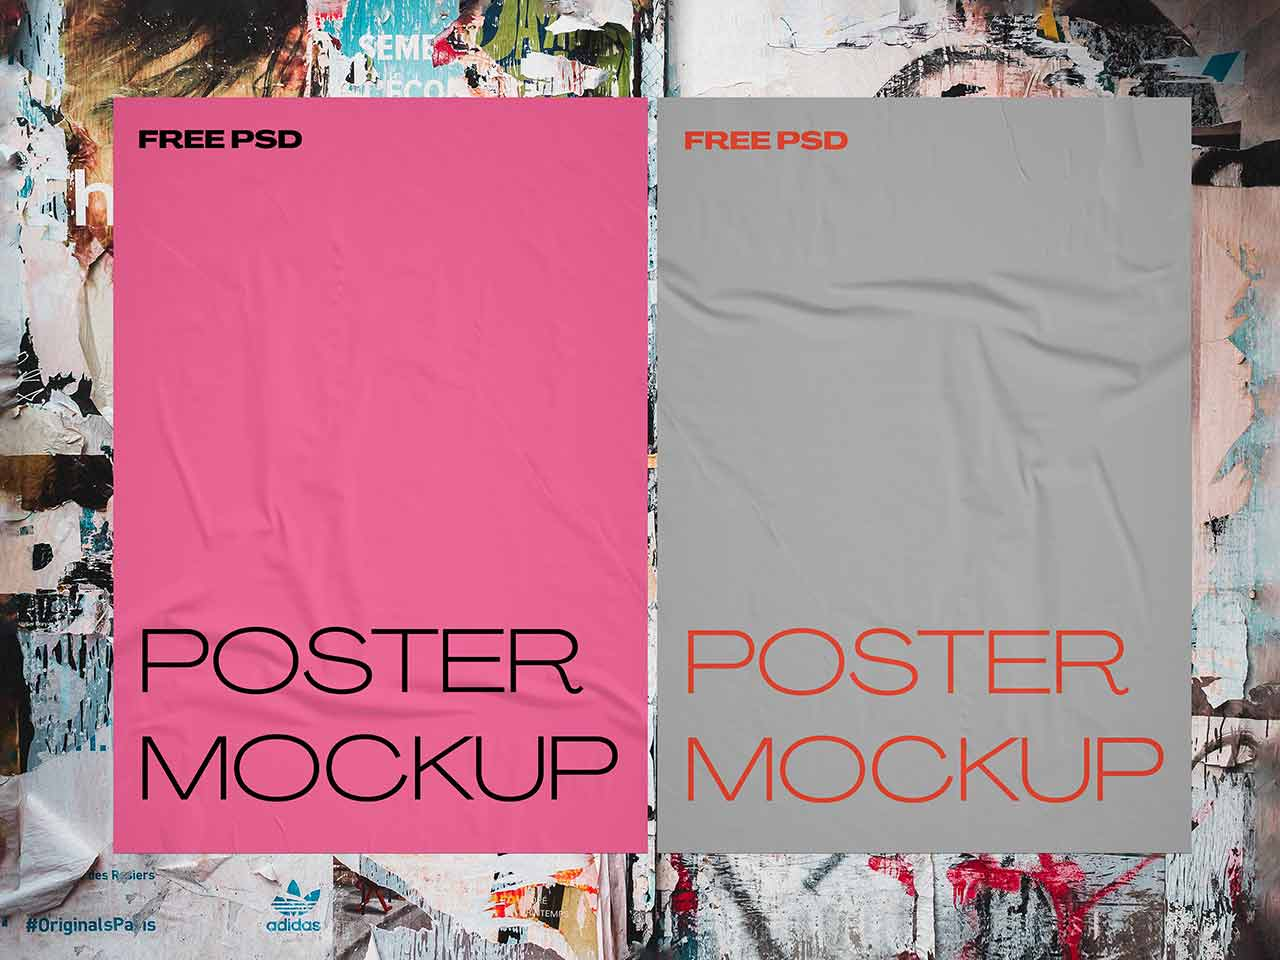 Why pay for vintage posters that are already in the public domain when you could instead just download high quality posters at freevintageposters.com? 50 Free Poster Mockups Psd Templates On Pixelbuddha